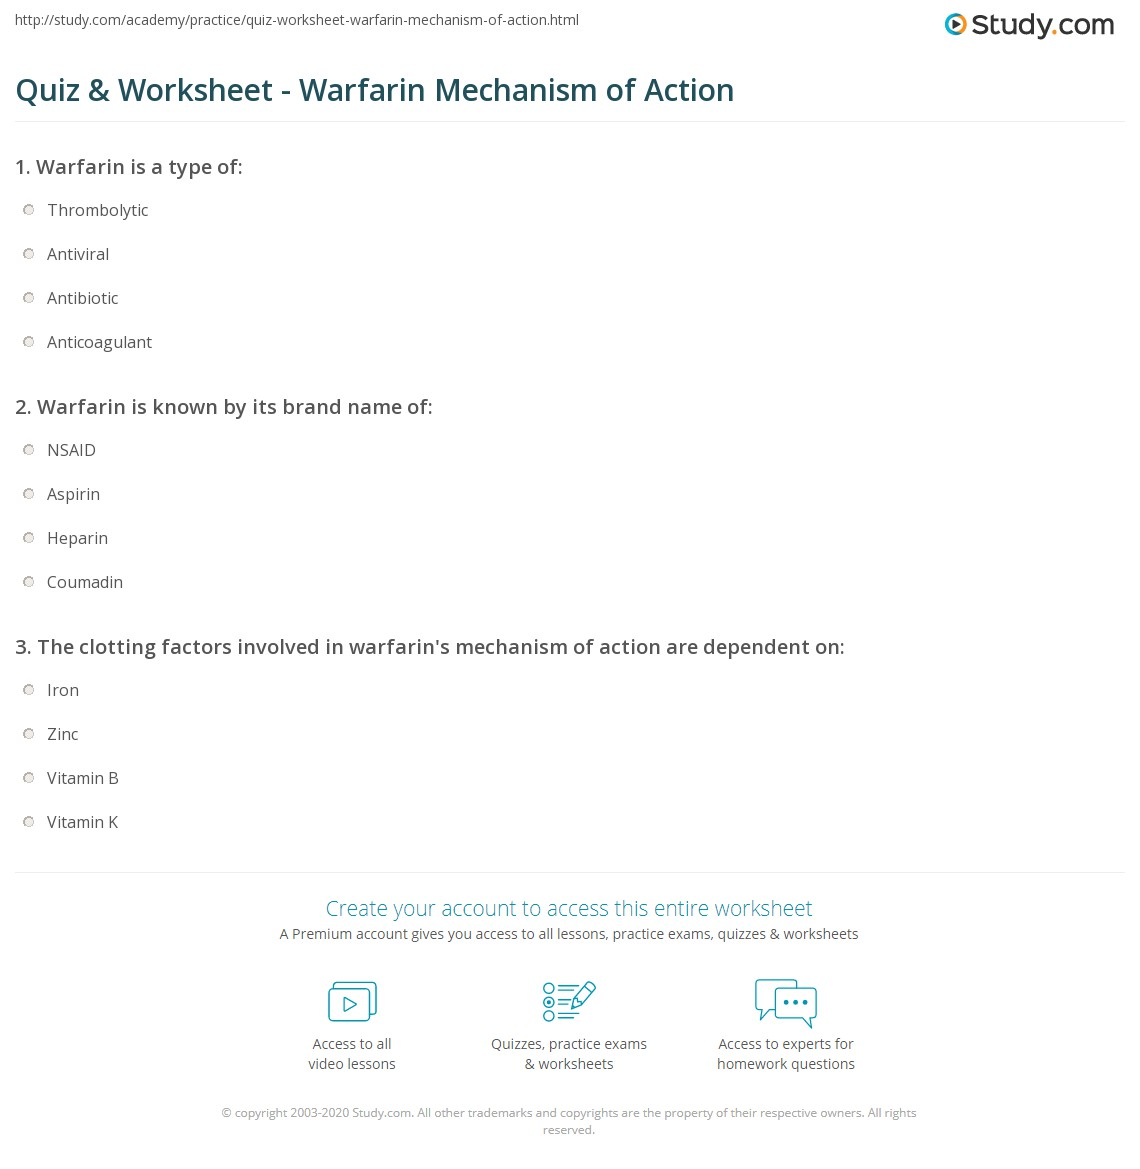 Quiz & Worksheet - Warfarin Mechanism of Action | Study.com